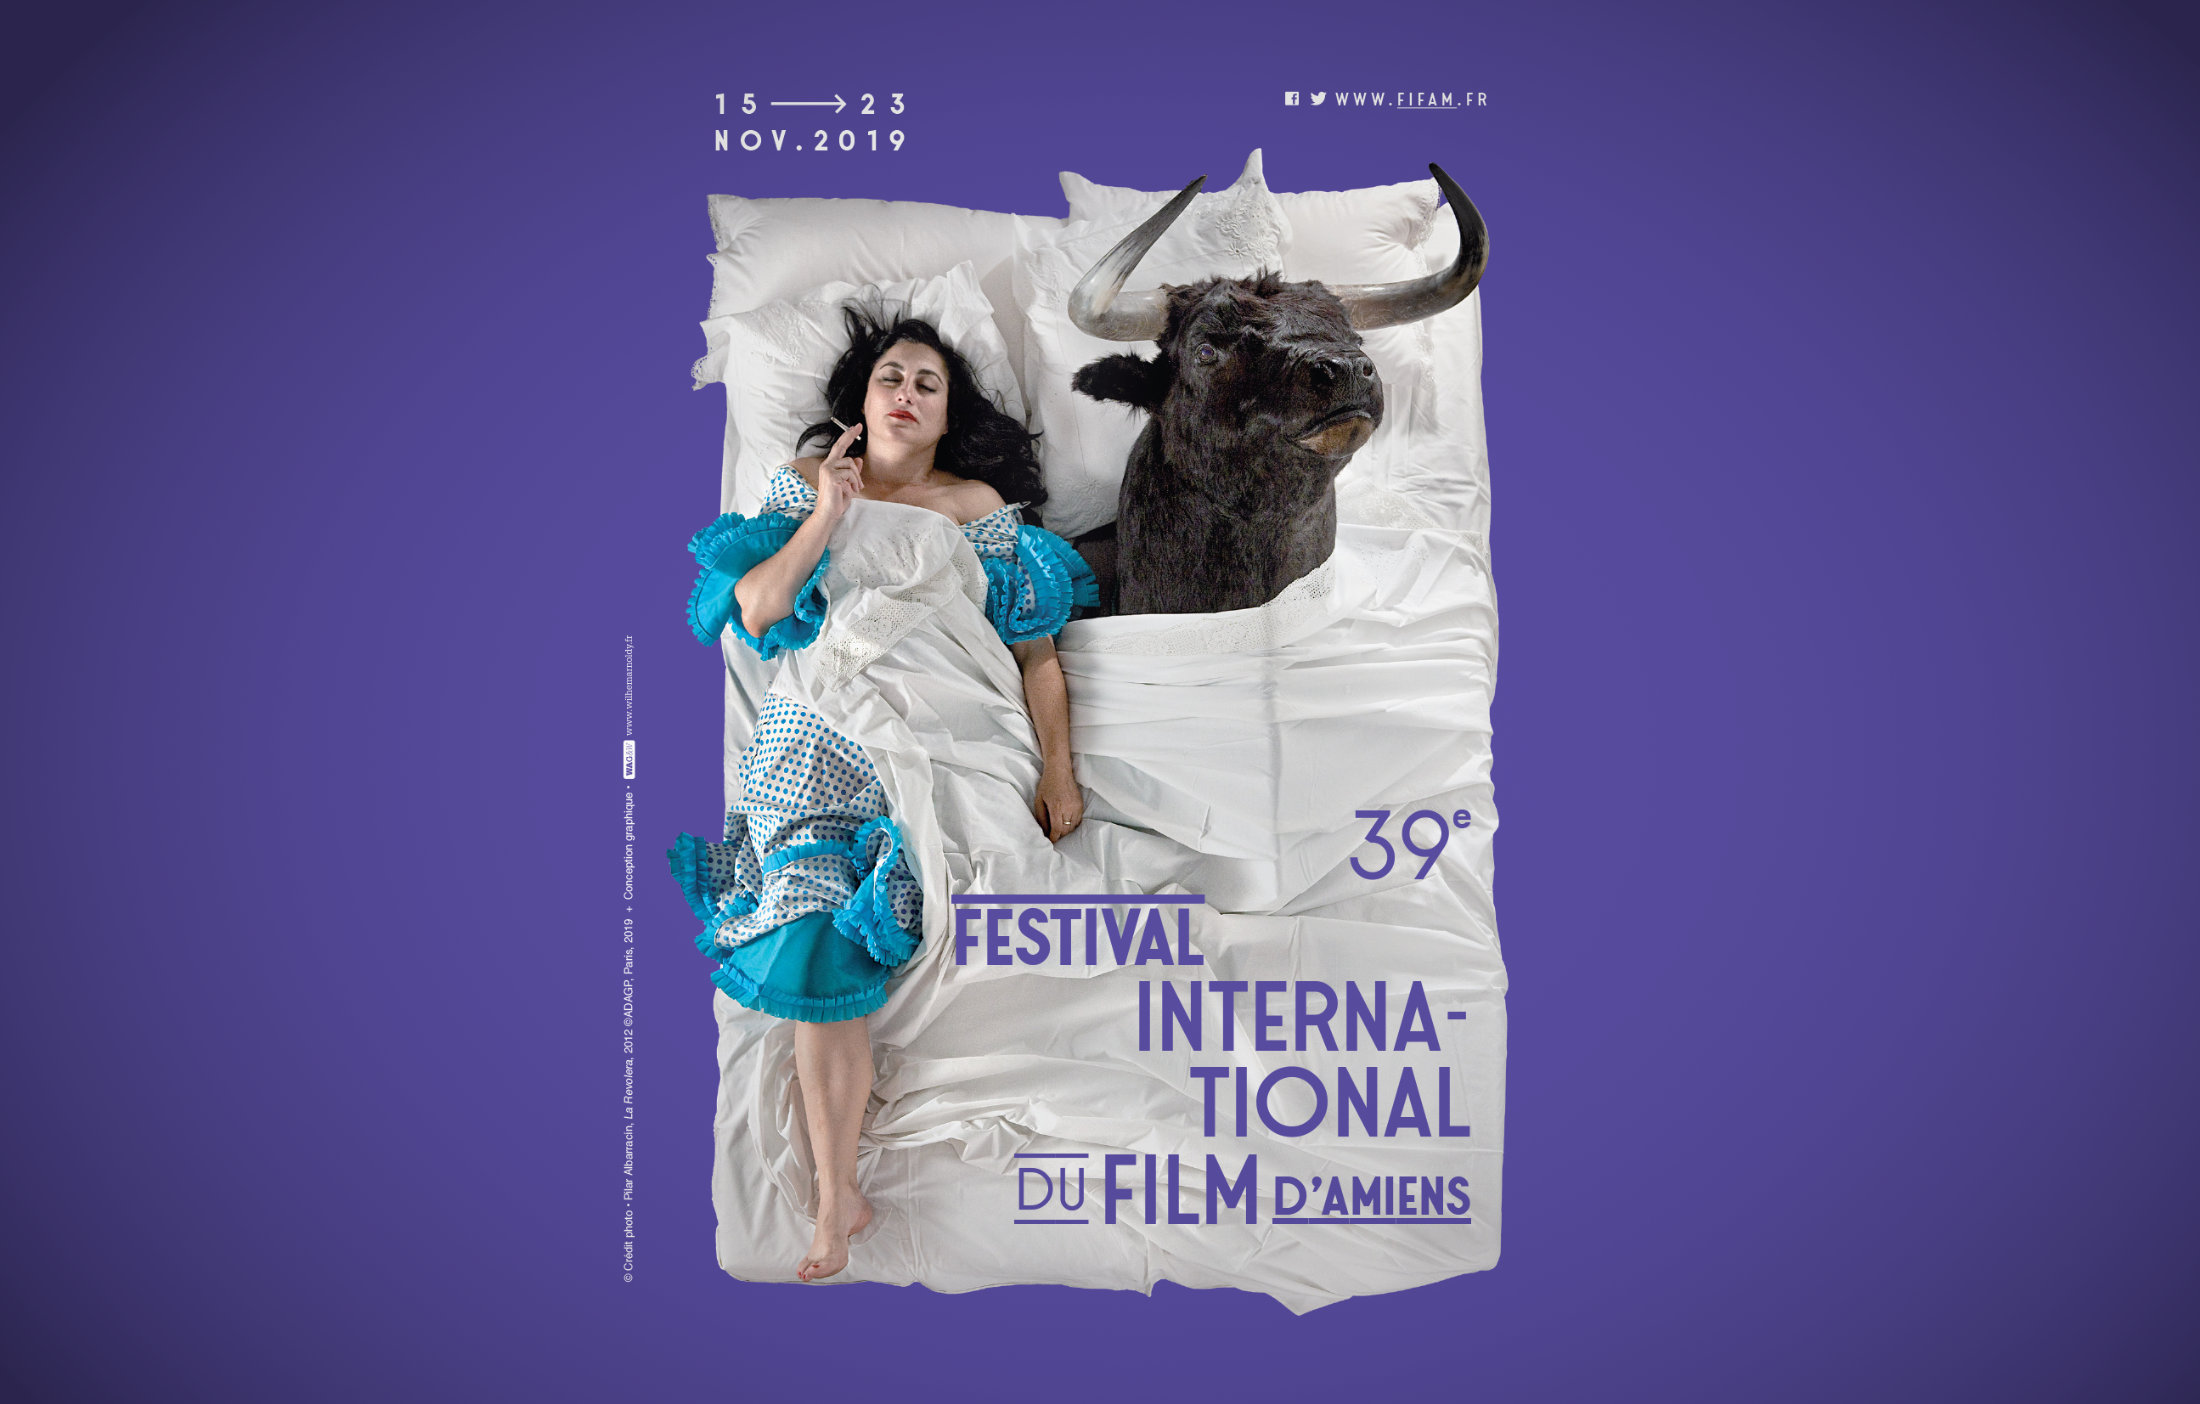 39e-Festival-International-Film-Amiens@2x